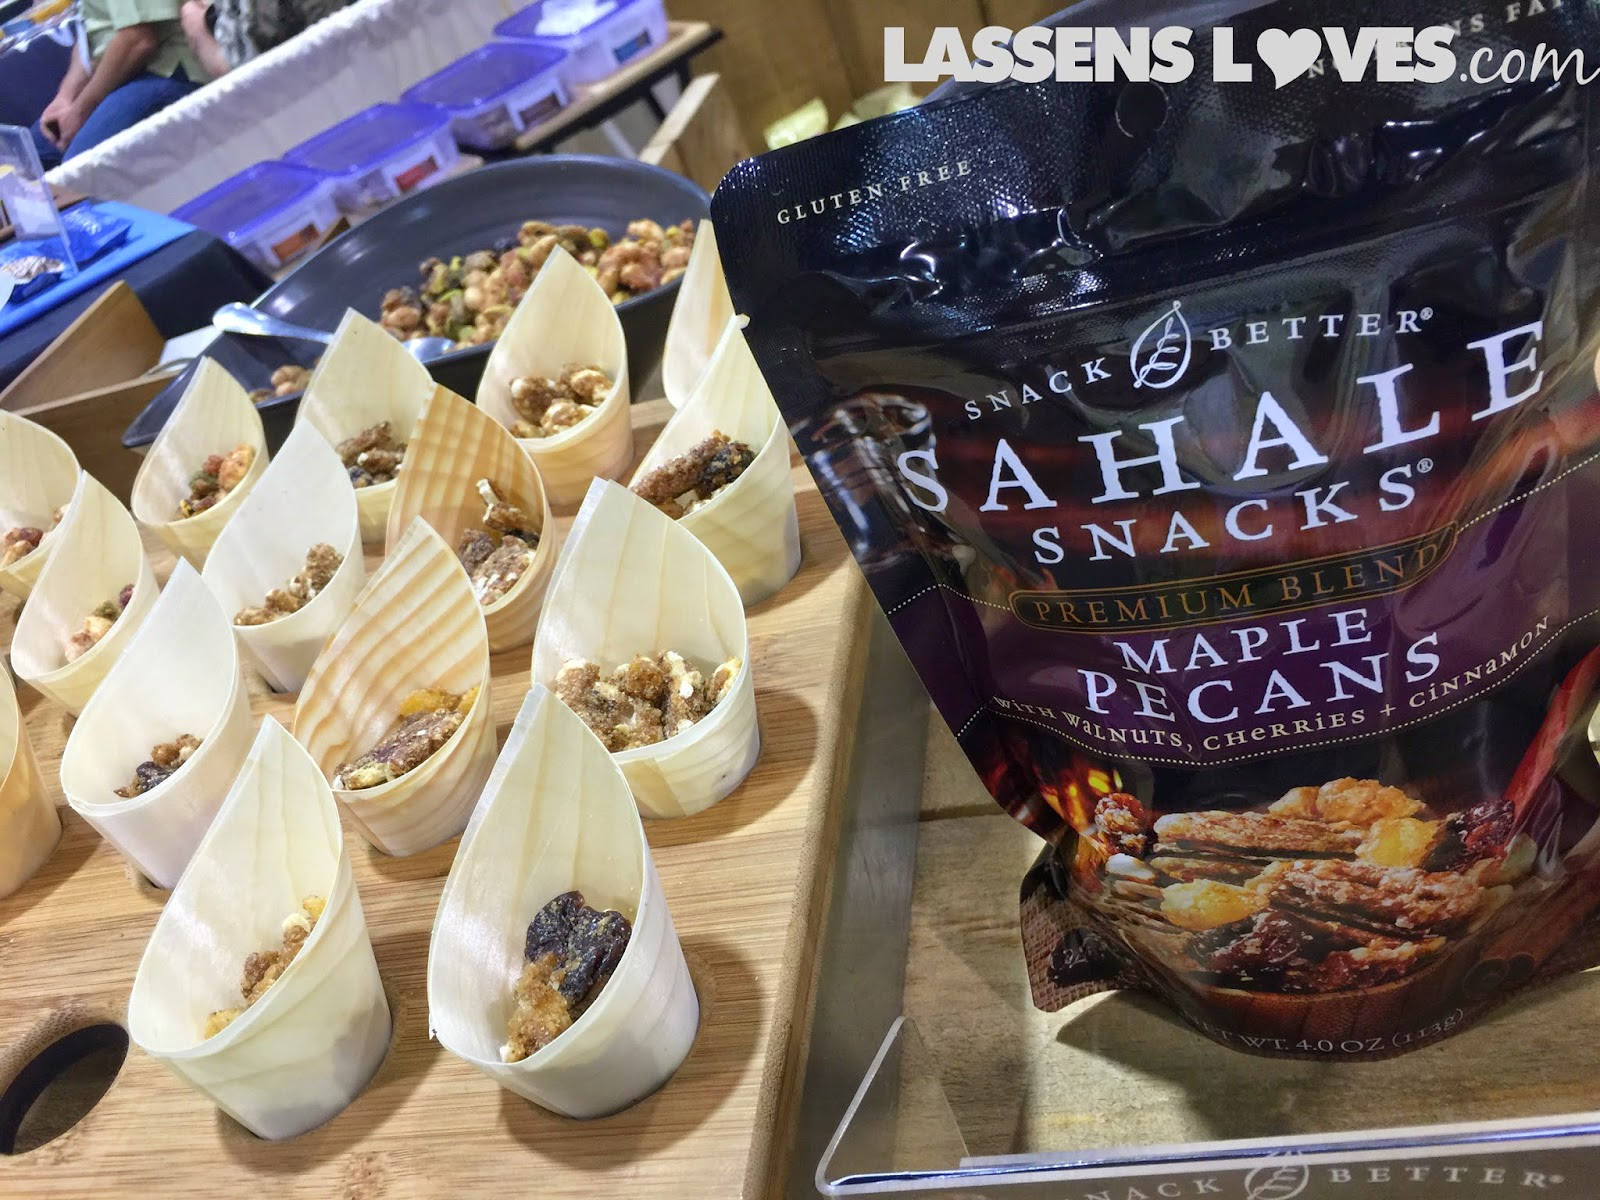 Expo+West+2015, Natural+Foods+Show, New+Natural+Products, sahale+snacks